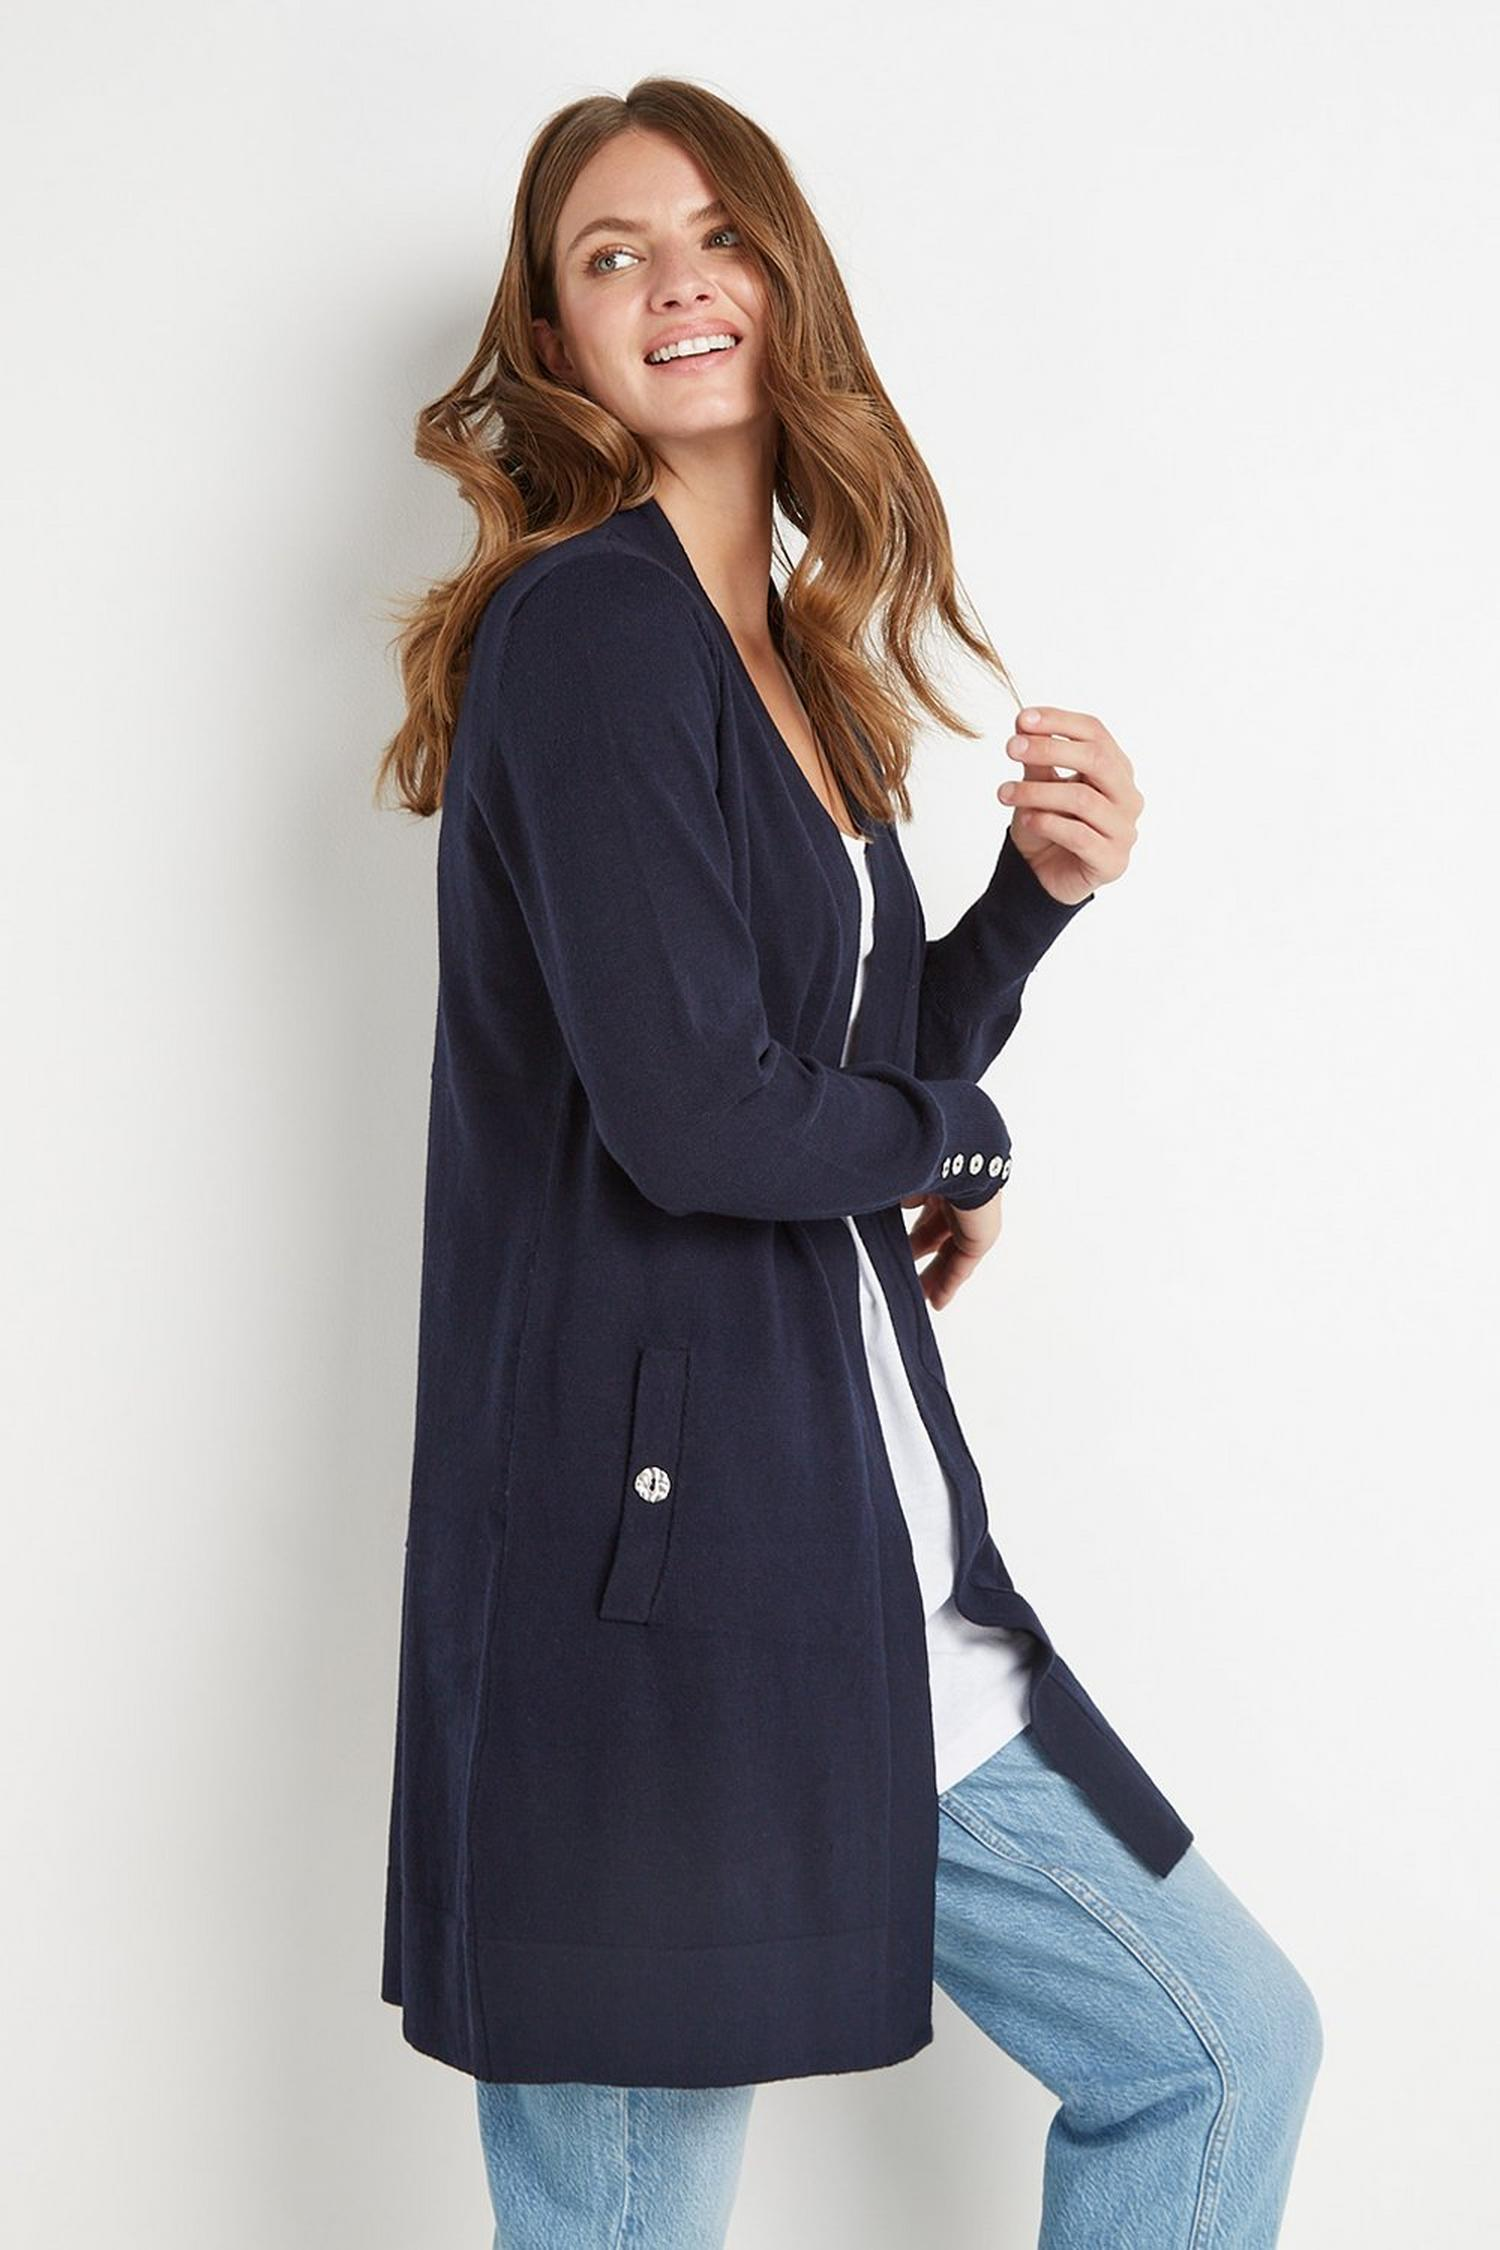 148 Navy Wool Blend Cardigan image number 2